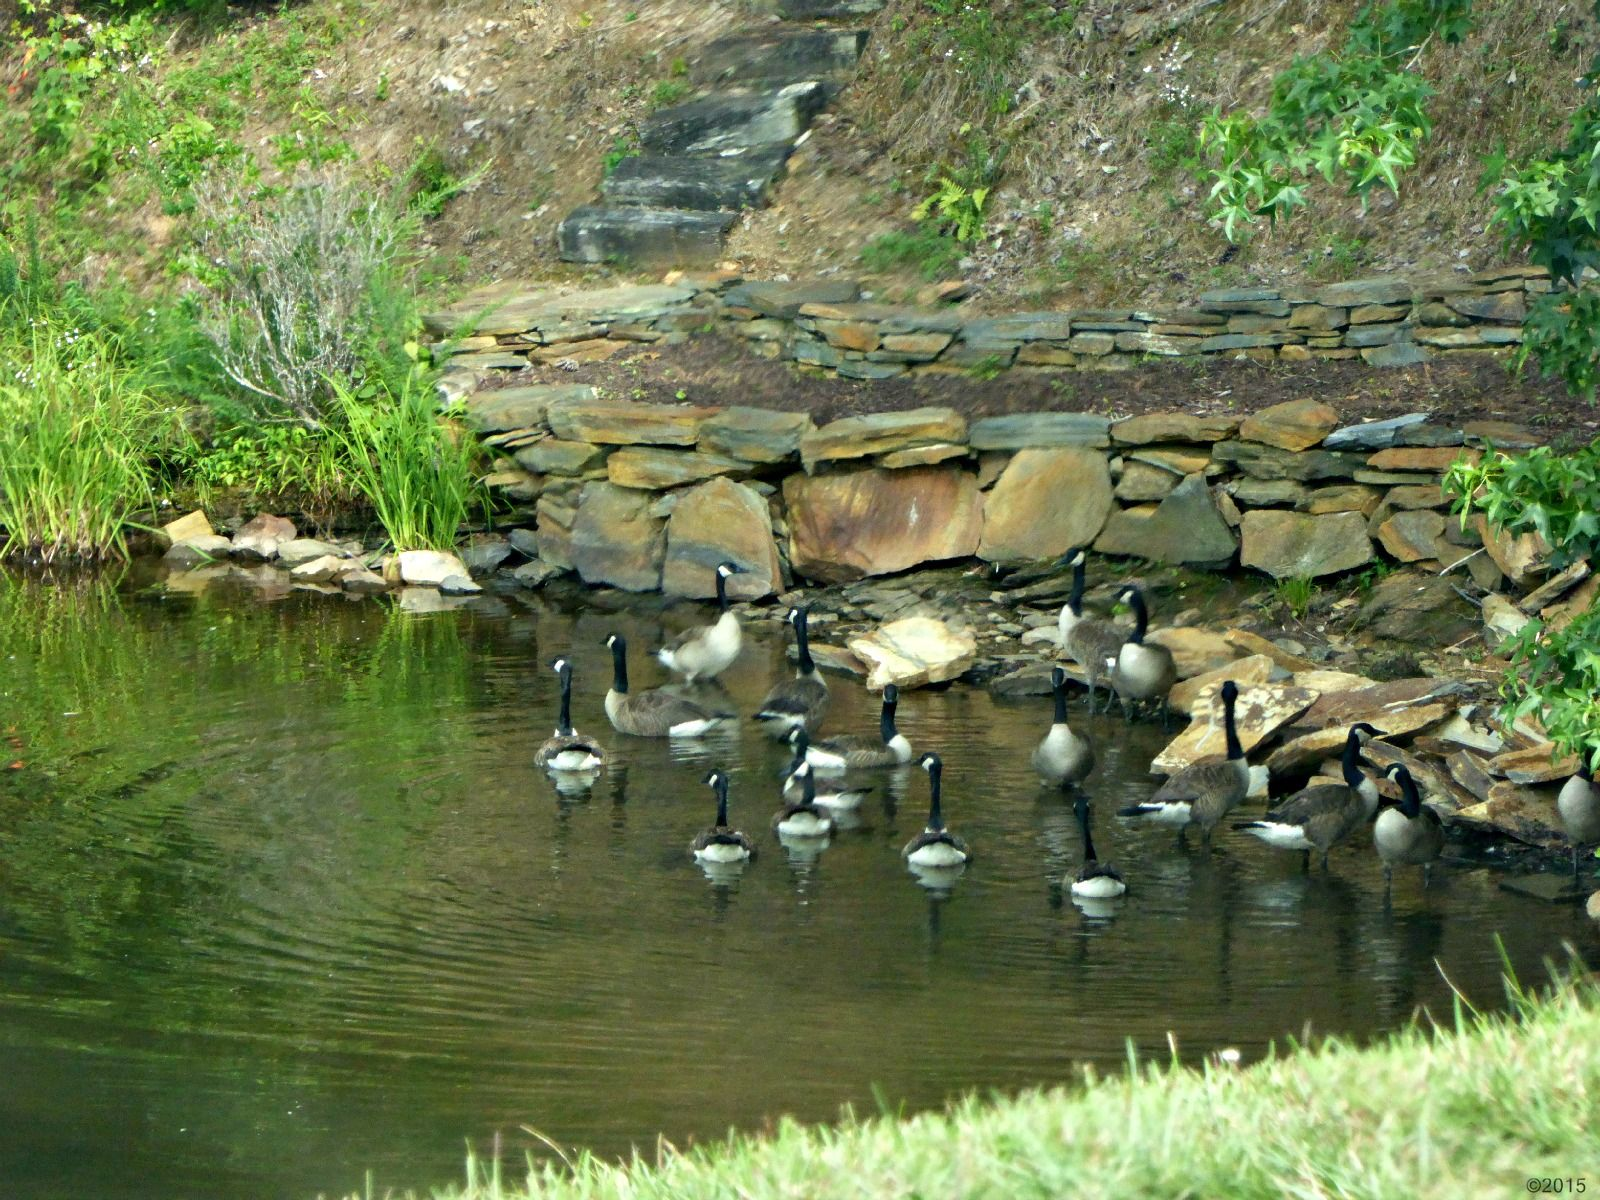 July 7, 2015 - Canada geese in a corner by the dam at Lake Tamarack